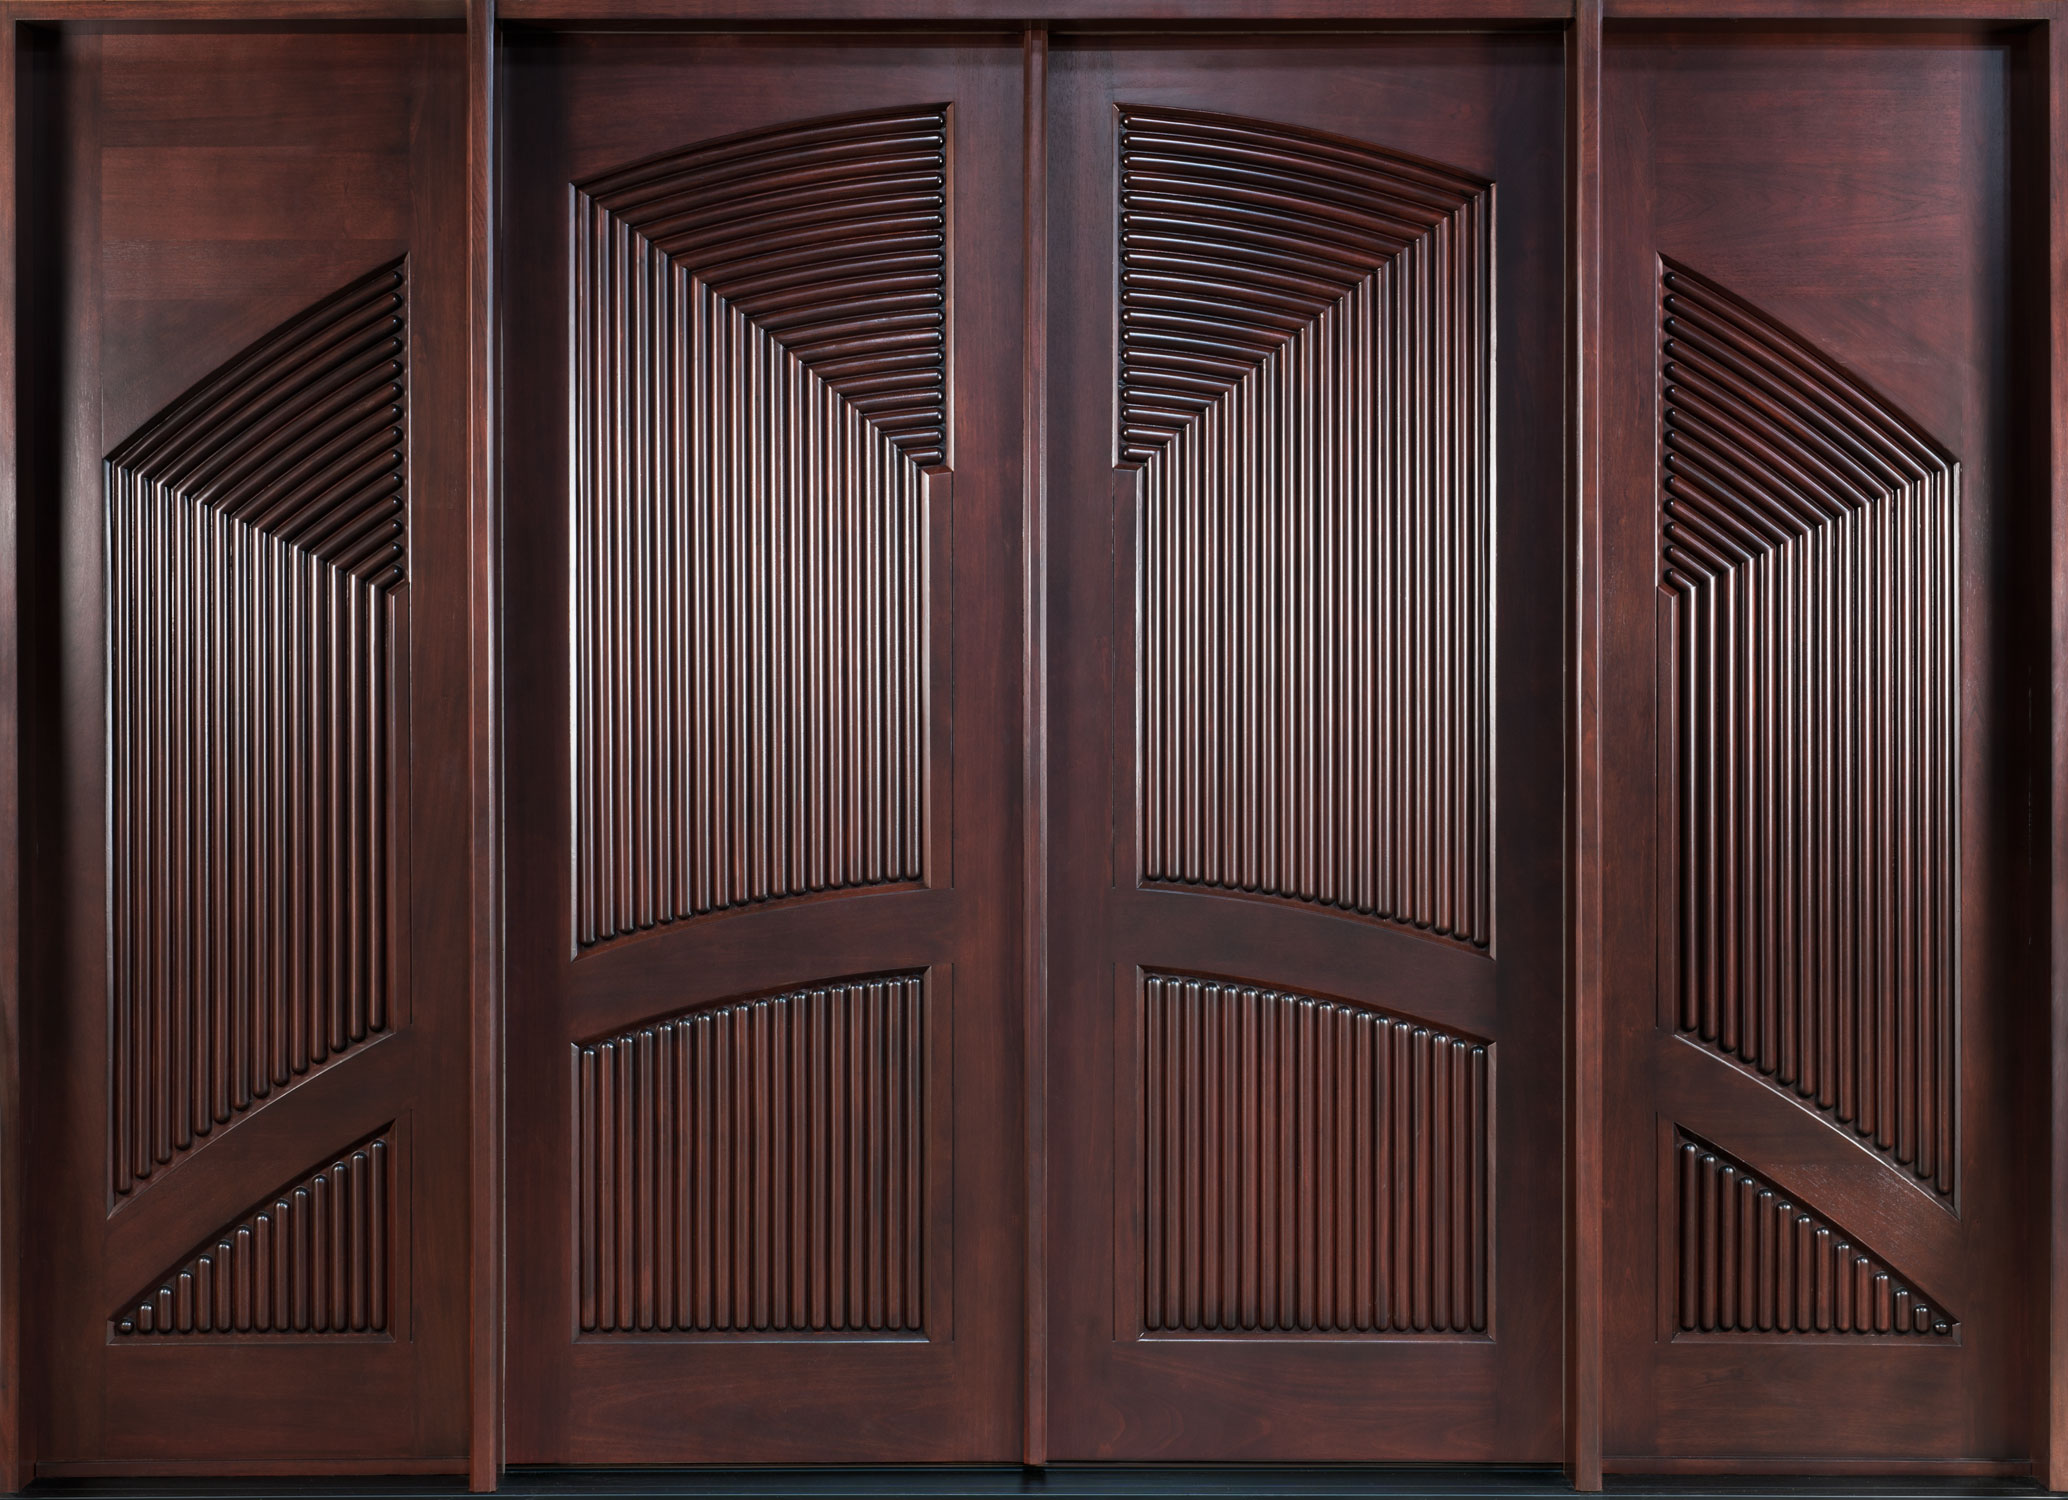 Le Meilleur Exterior Doors Buying Guide For Your Dream Home Ce Mois Ci